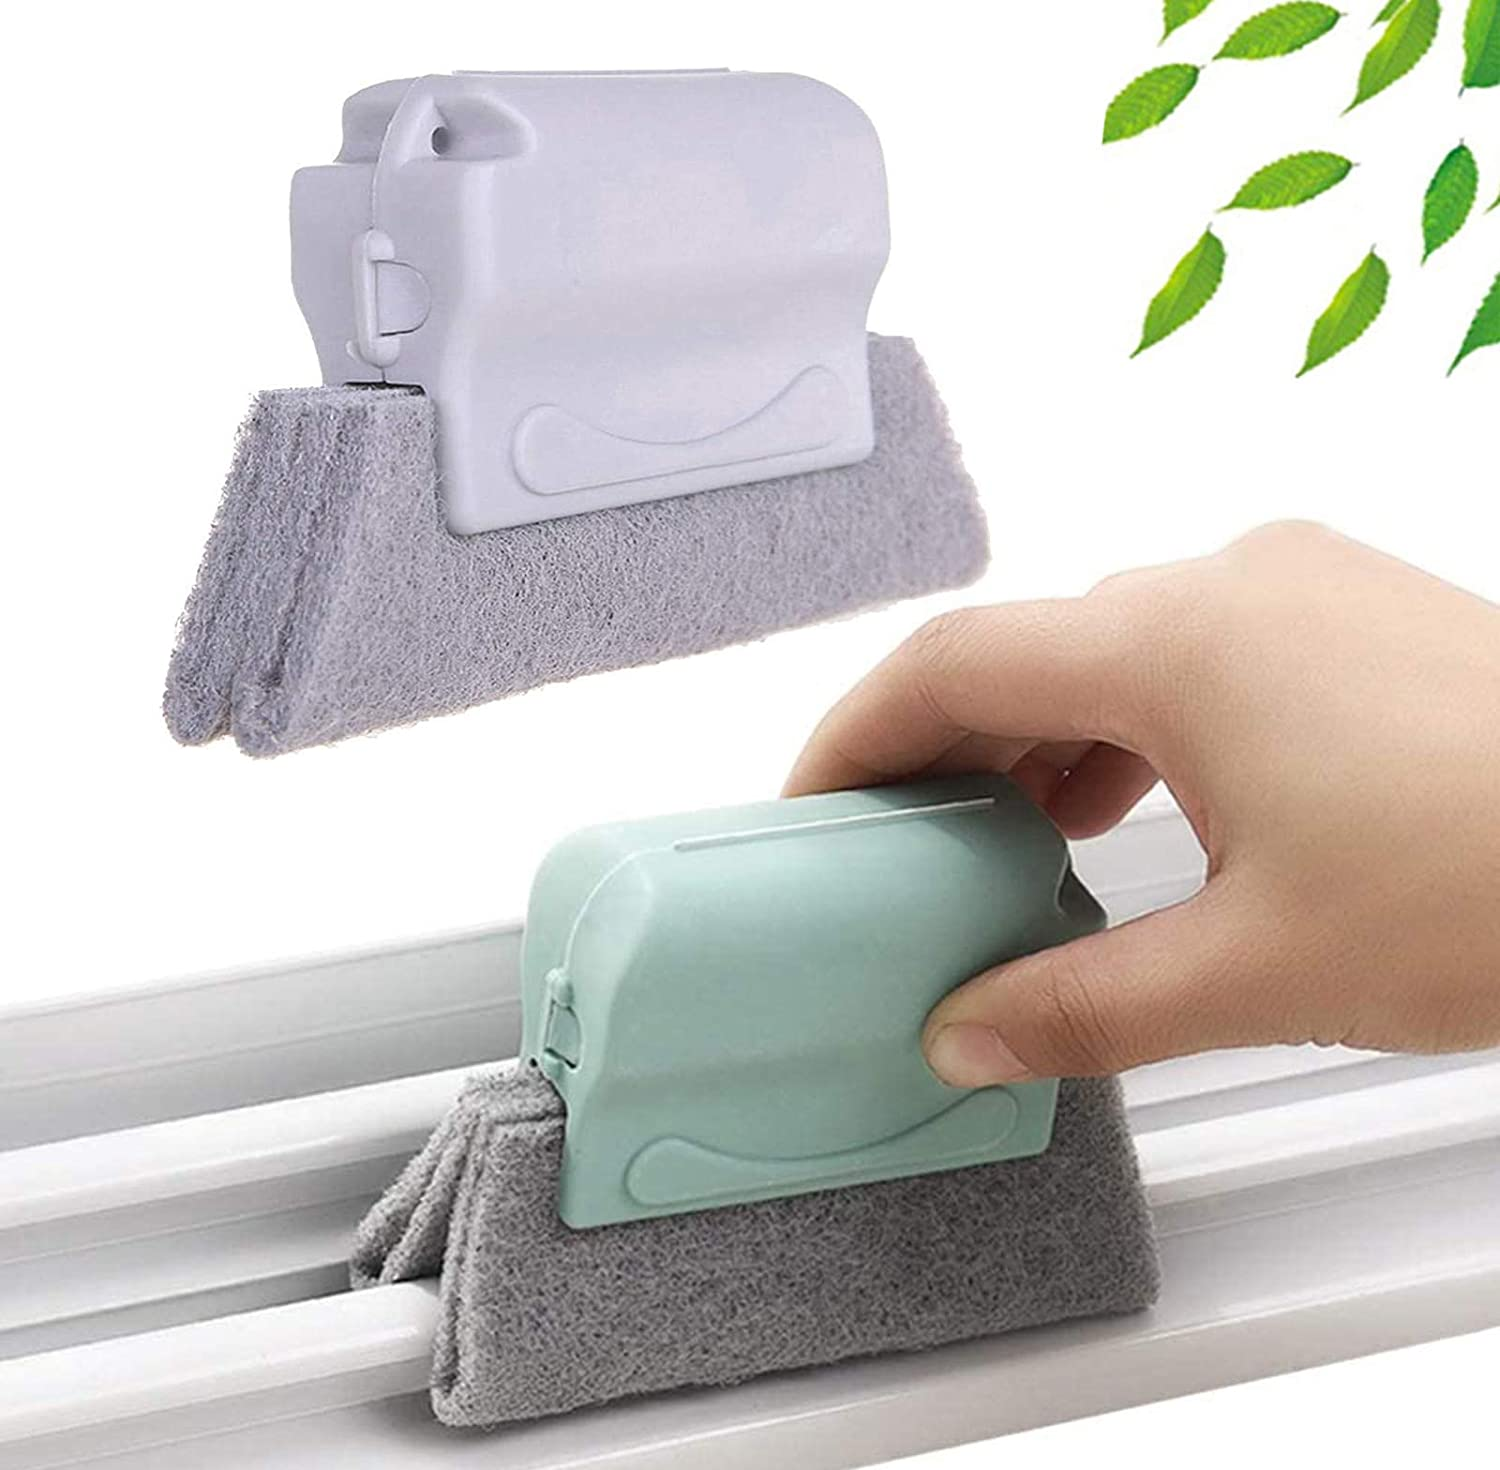 Multipurpose Windows Groove Cleaning Brush  Window Cleaner  Window Cleaning Brush  Windows Rust Cleaner  Toilet Seat Corner Cleaner  Cleaning Sponge  Kitchen Corner Cleaning Sponge  Stove rust removing tool  Stove Cleaner Foam  Cleaning Gadget